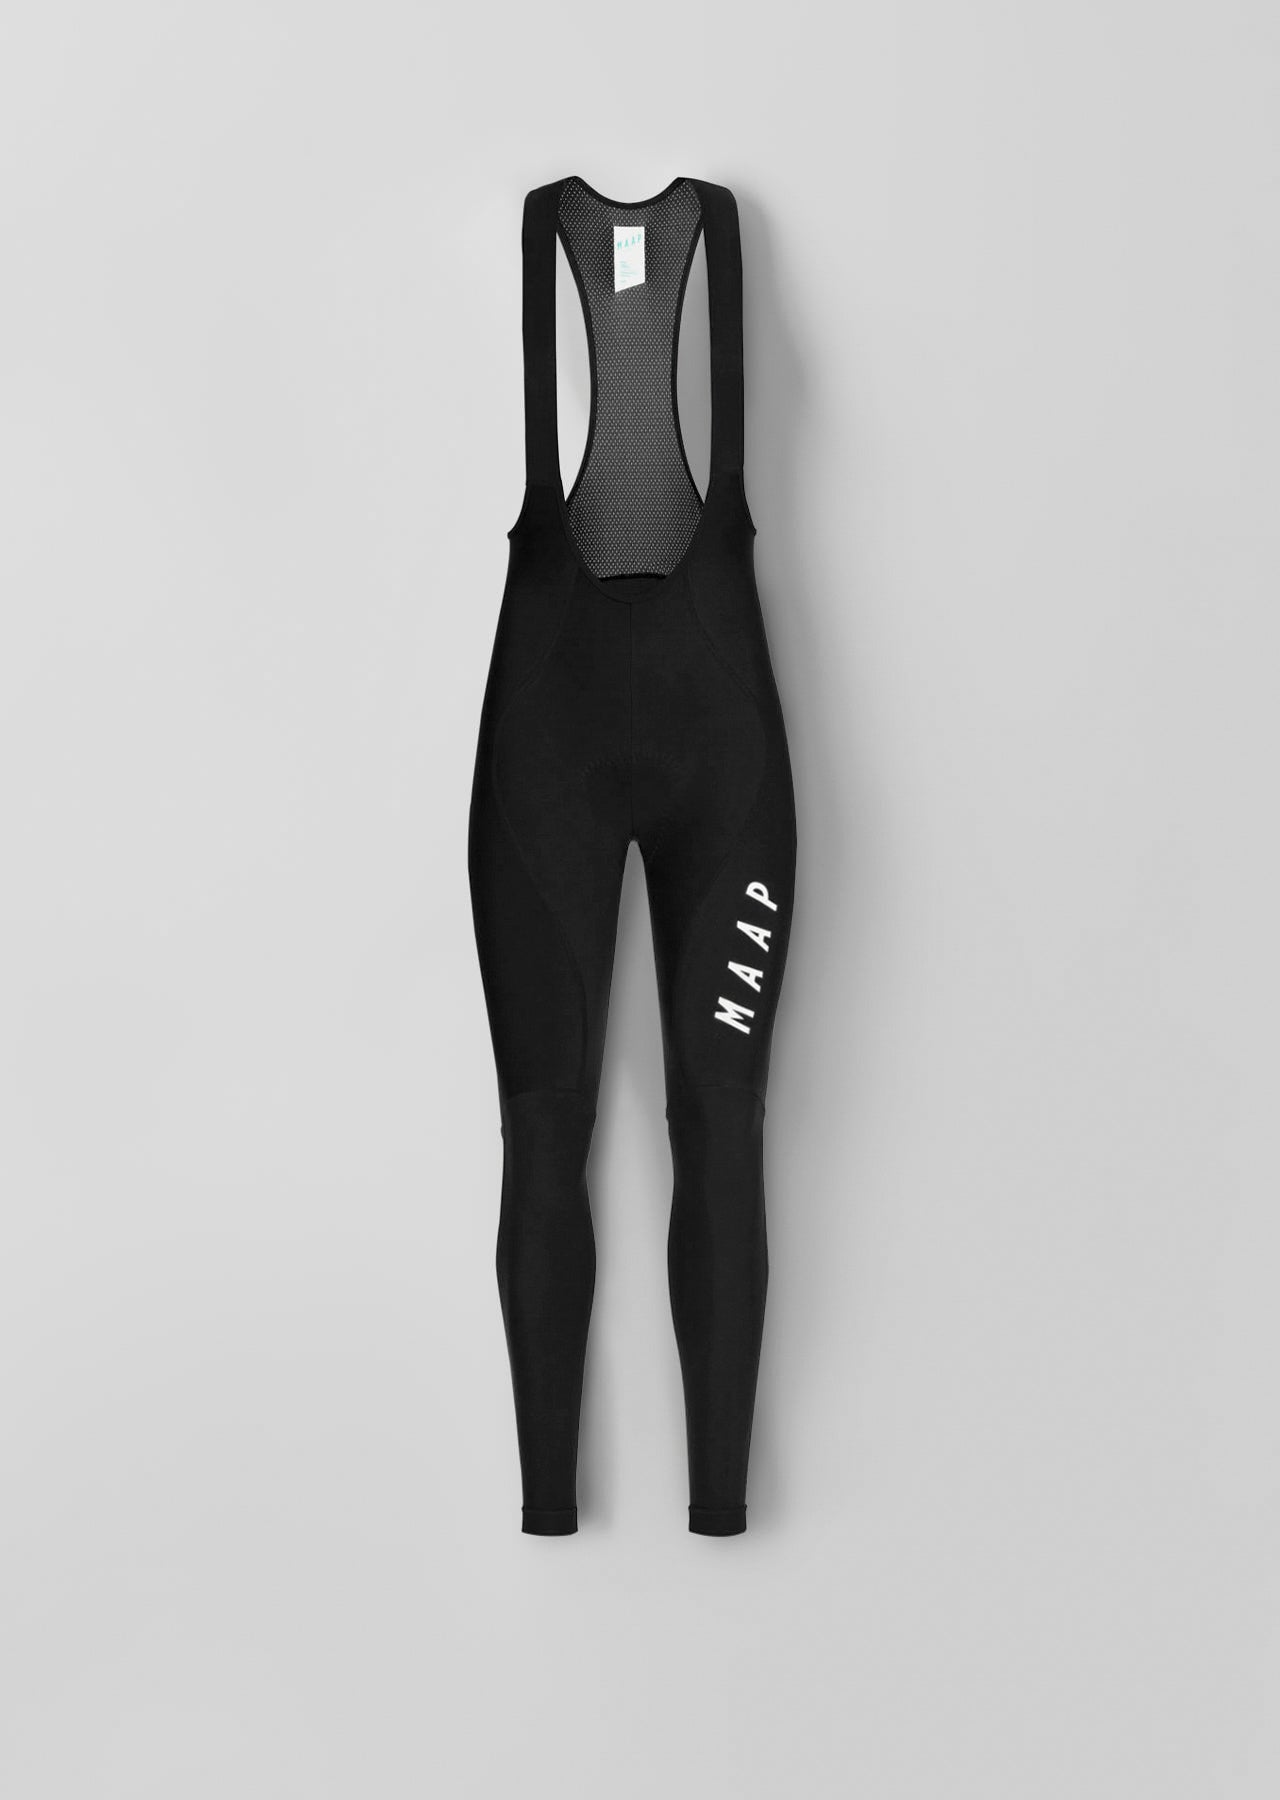 Women's Team Thermal Bib Tights